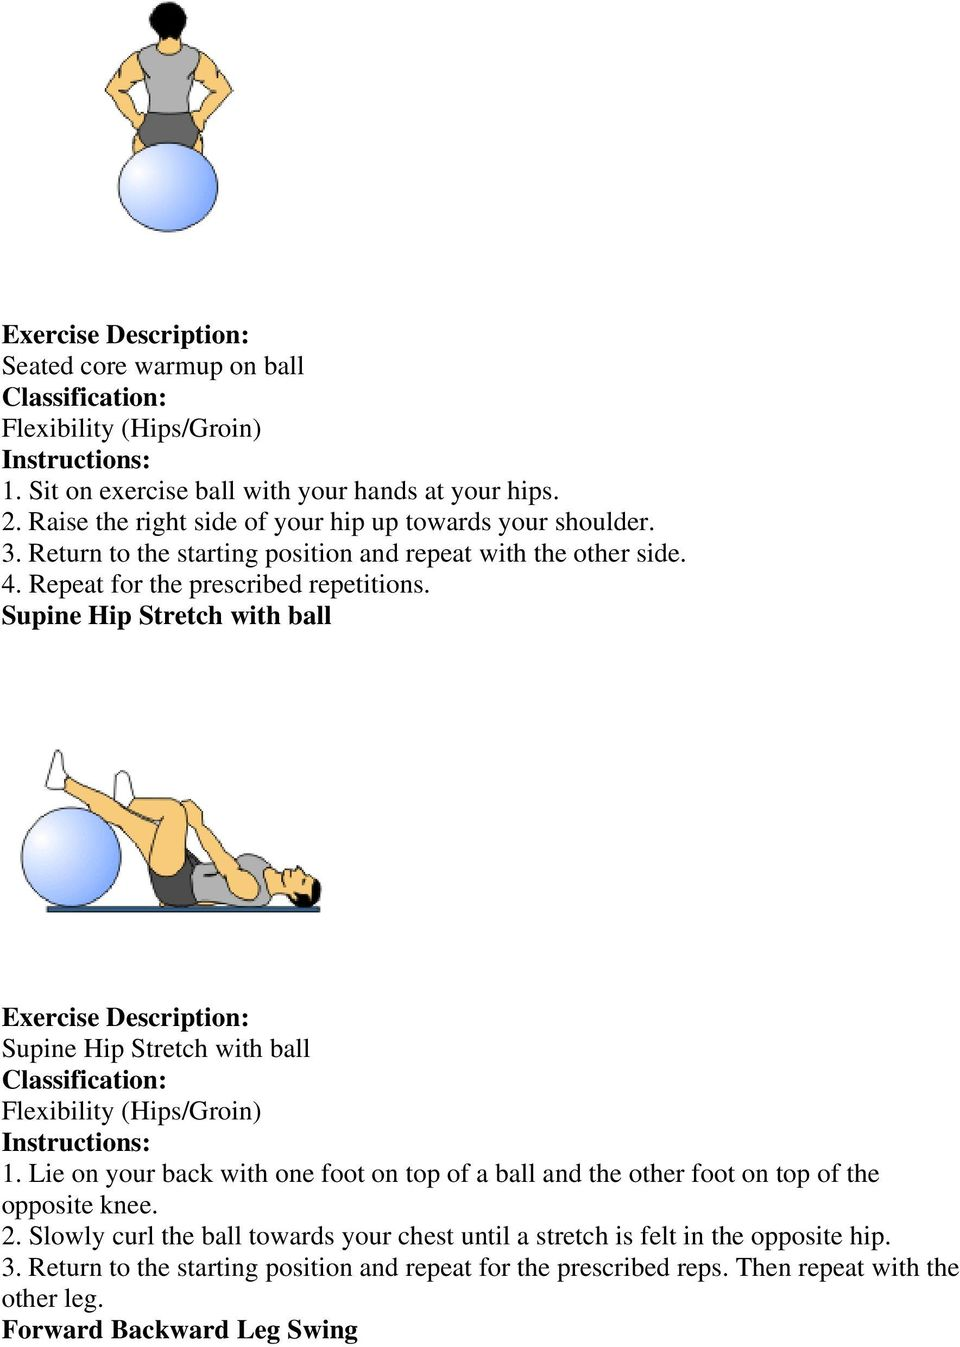 Supine Hip Stretch with ball Supine Hip Stretch with ball 1. Lie on your back with one foot on top of a ball and the other foot on top of the opposite knee.